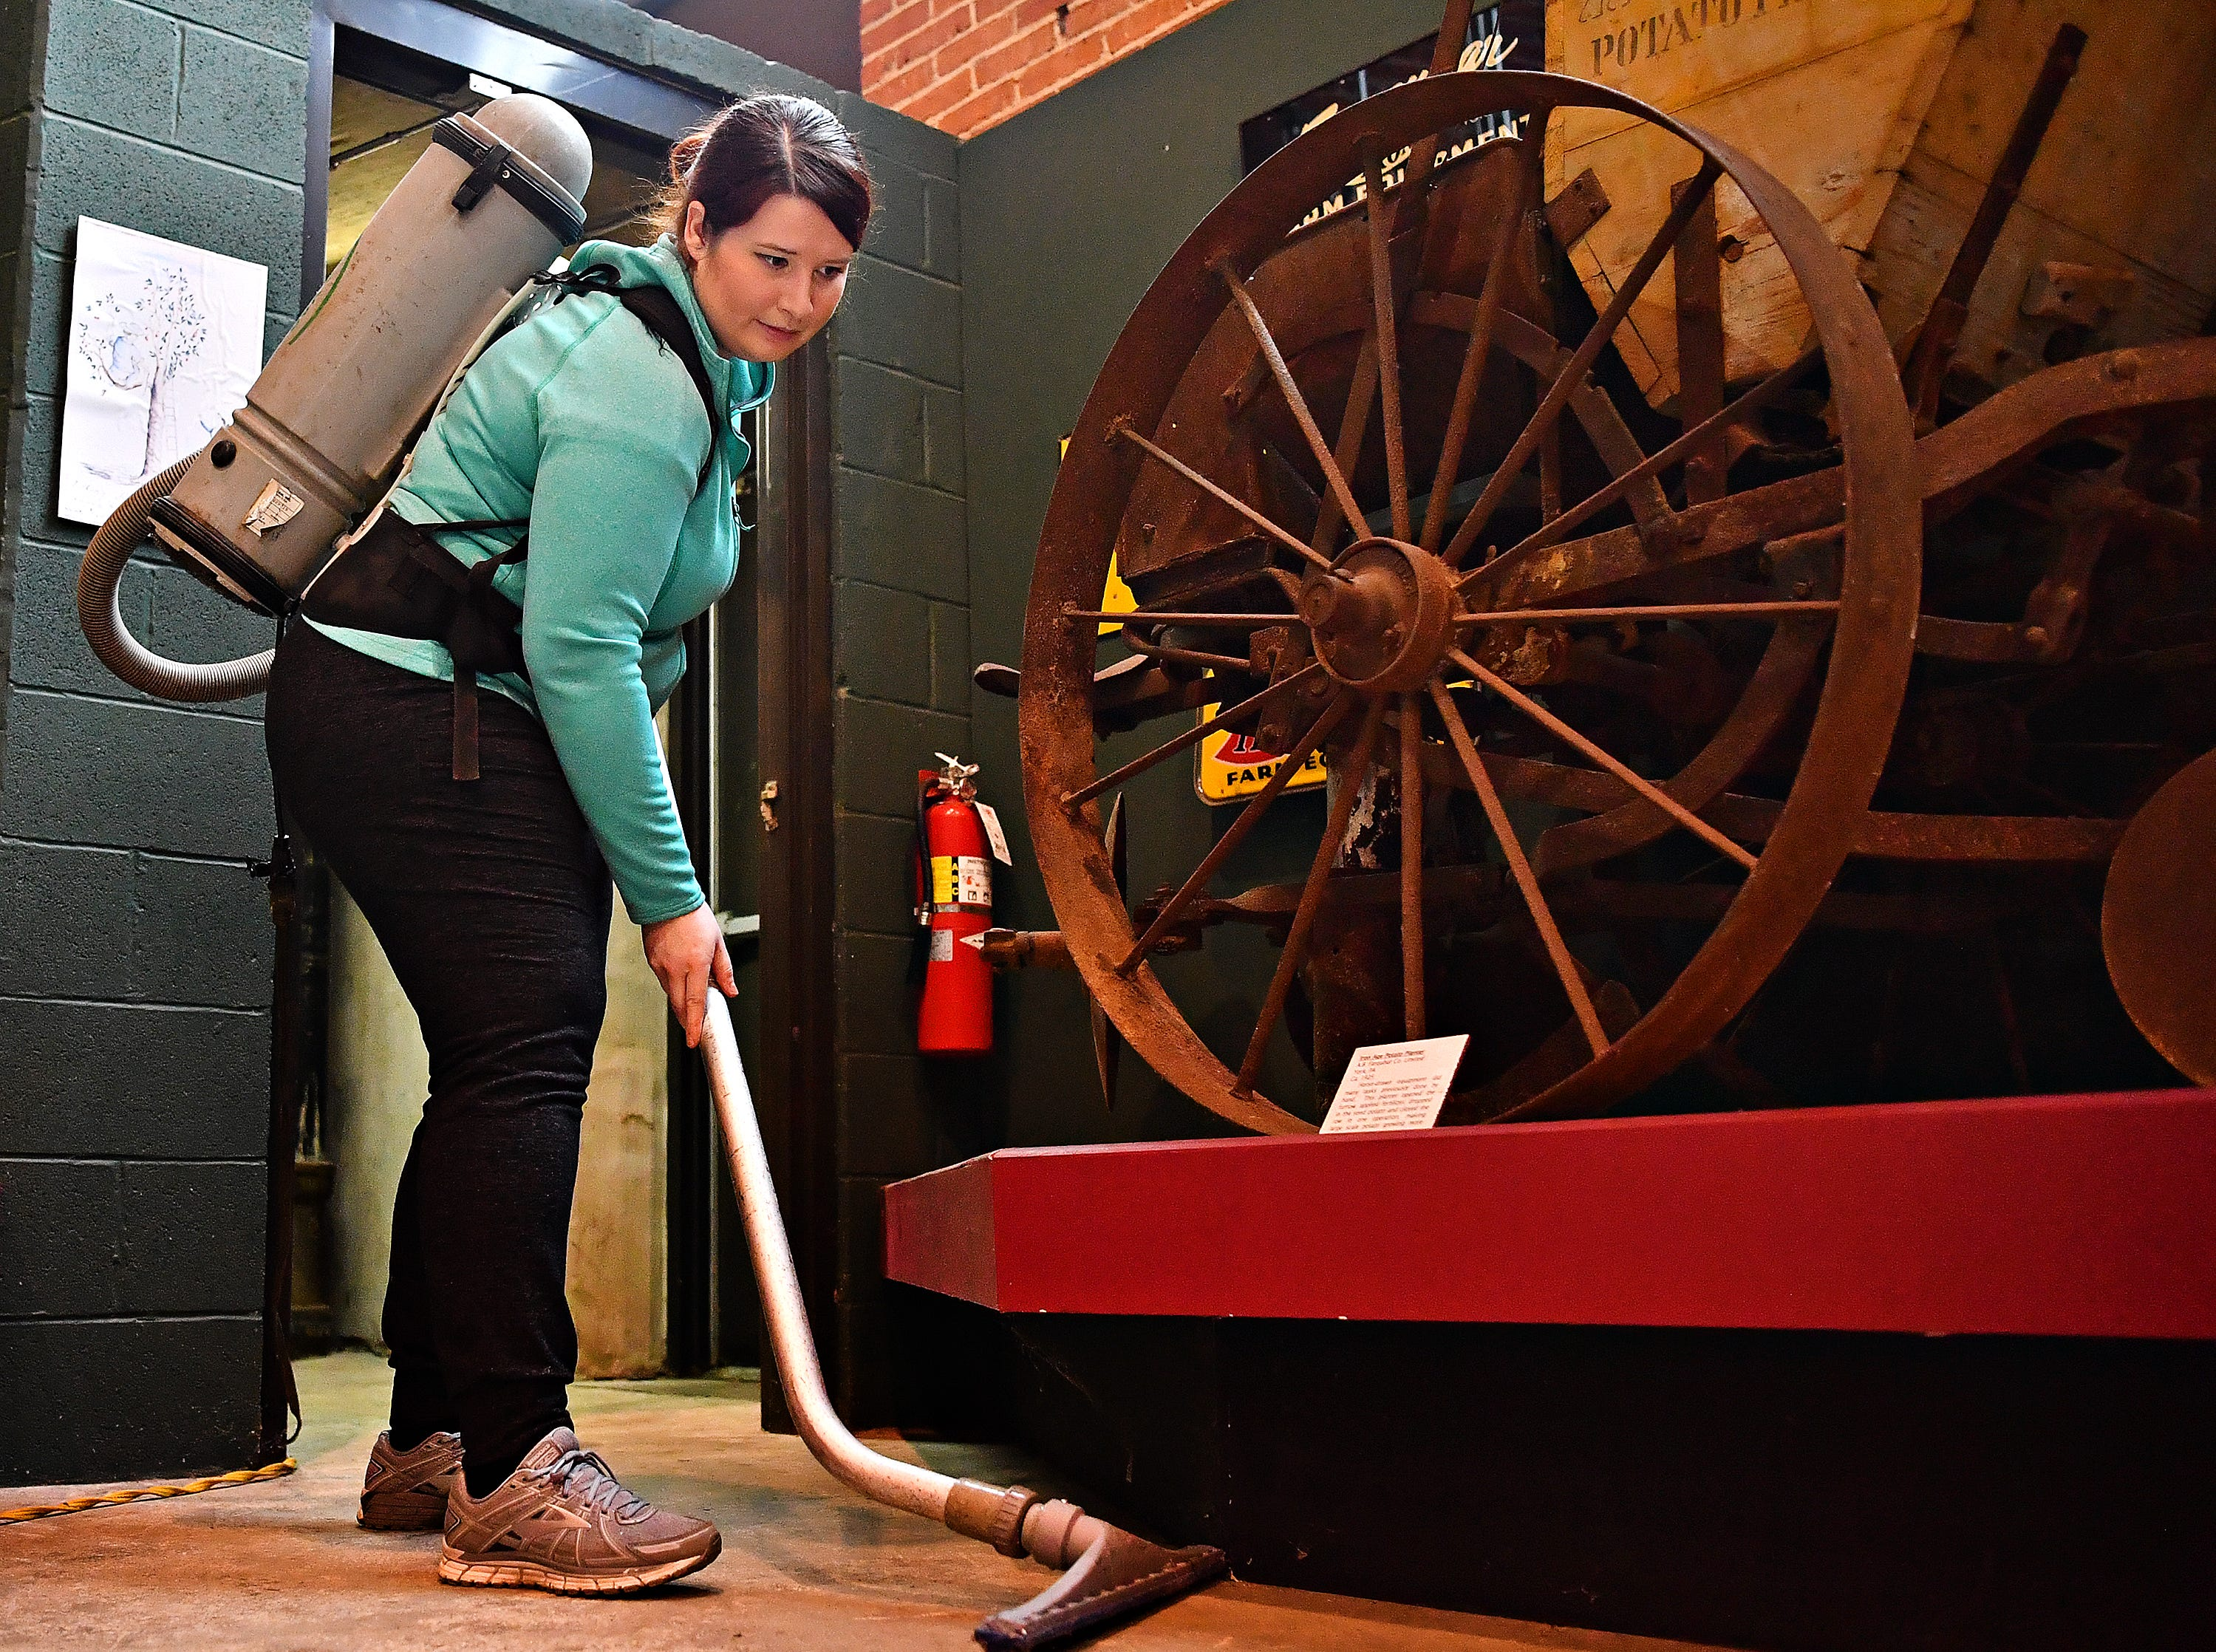 York County History Center staff clean the Agriculture & Industrial Museum in York City, Thursday, Jan. 24, 2019. The museum is one of five under the History Center umbrella, all of which are closed Jan. 22-25 for their annual spring cleaning. Dawn J. Sagert photo